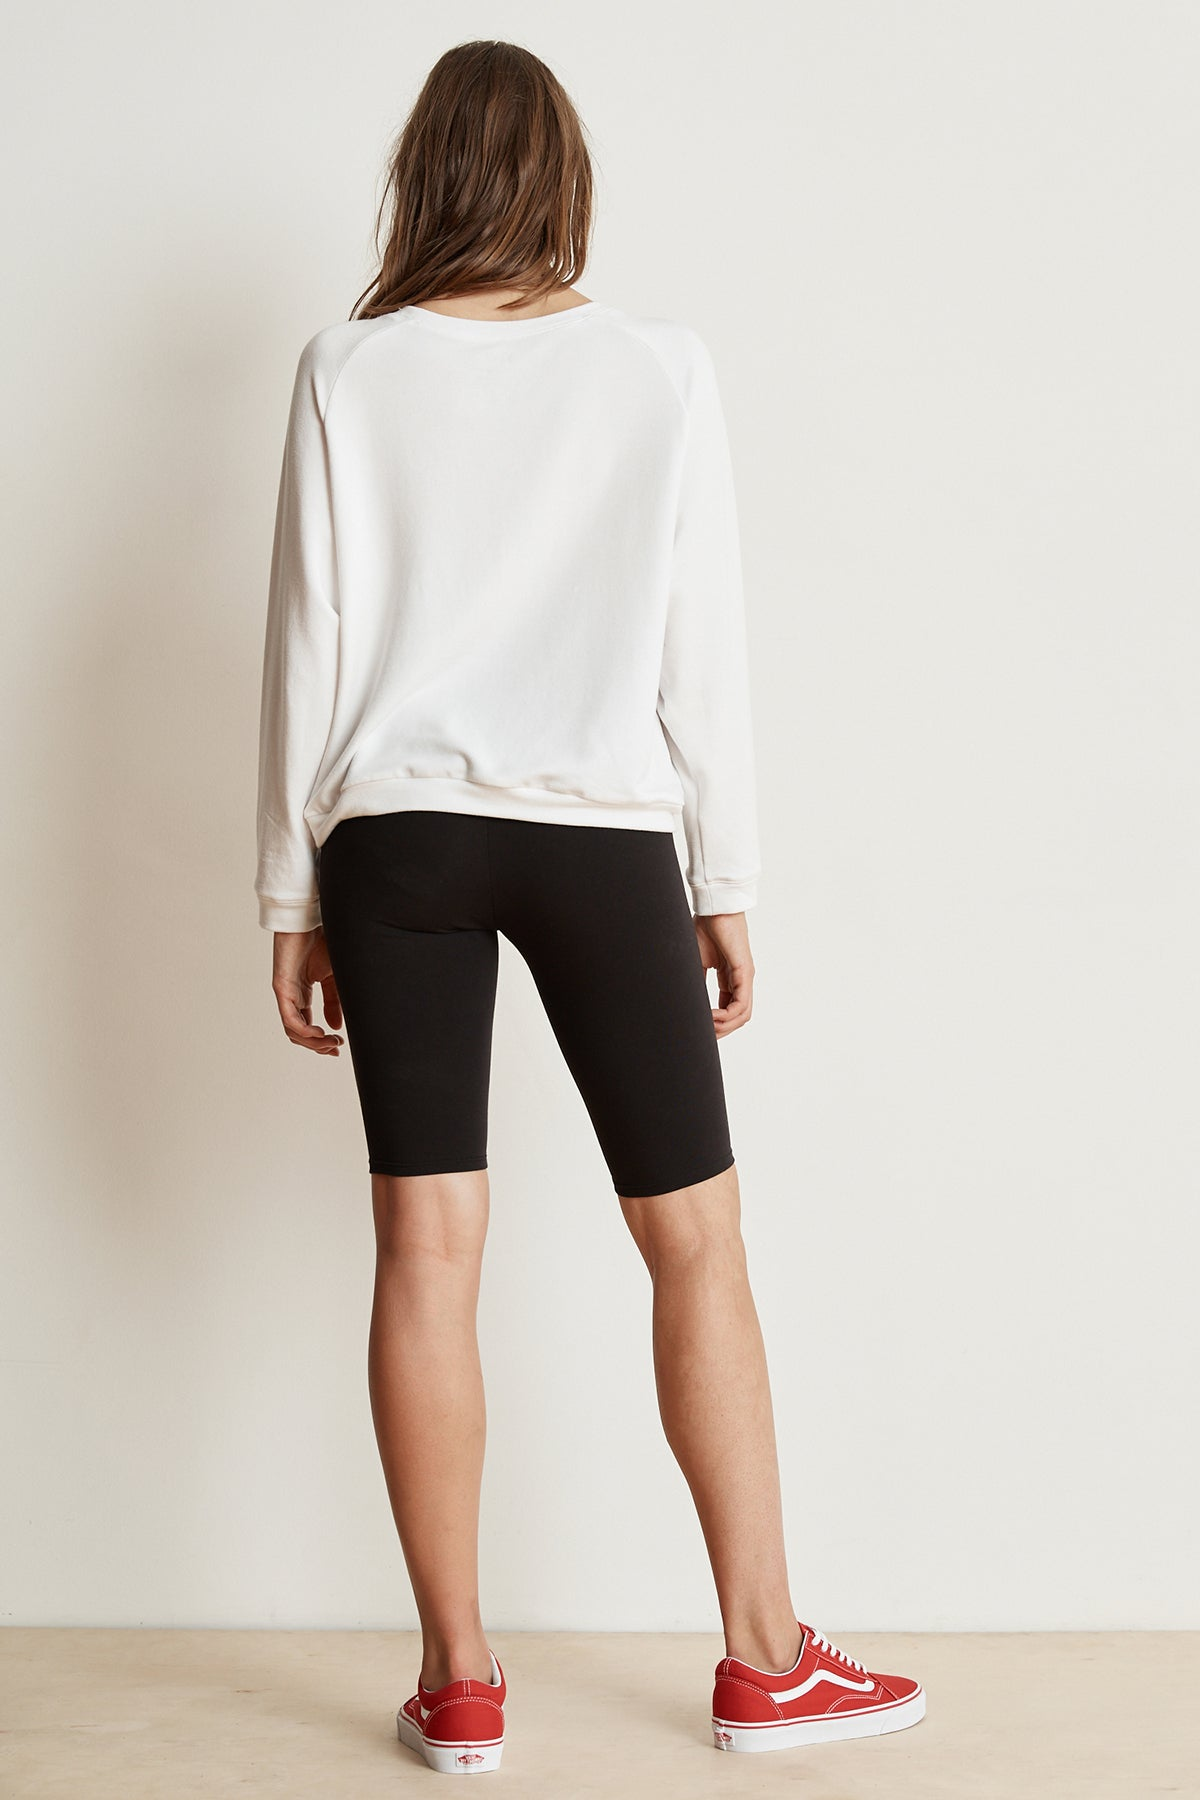 ROXY COTTON STRETCH BIKER SHORT BACK